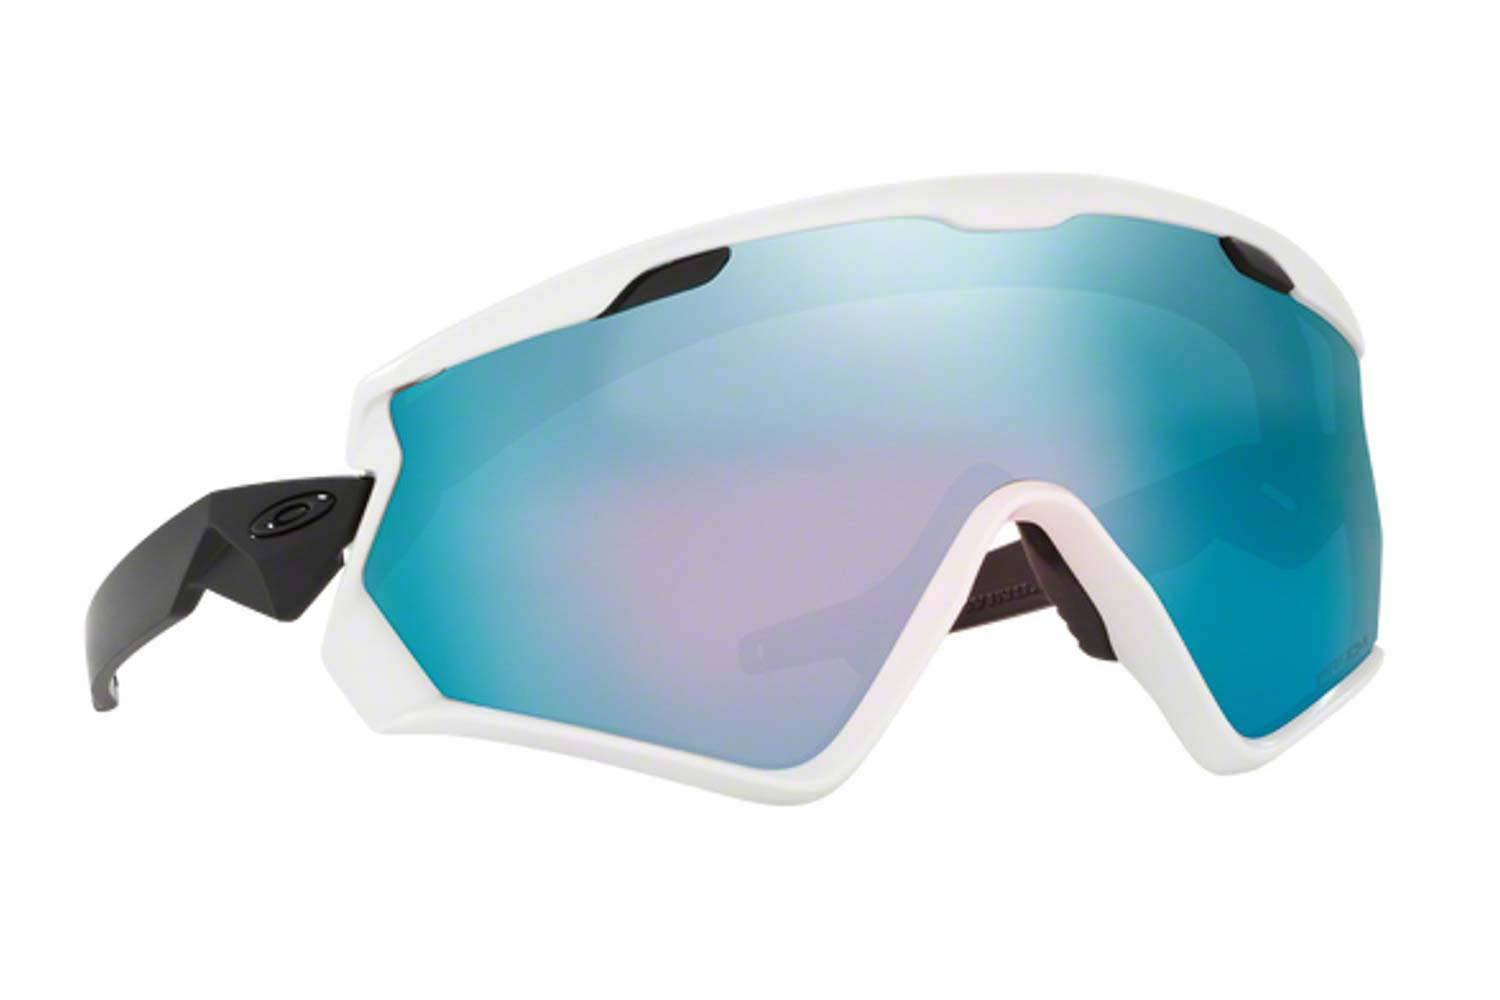 df4e88c85e SUNGLASSES Oakley Wind Jacket 2.0 7072 03 Mt White Prizm Snow Sapphire  Iridium